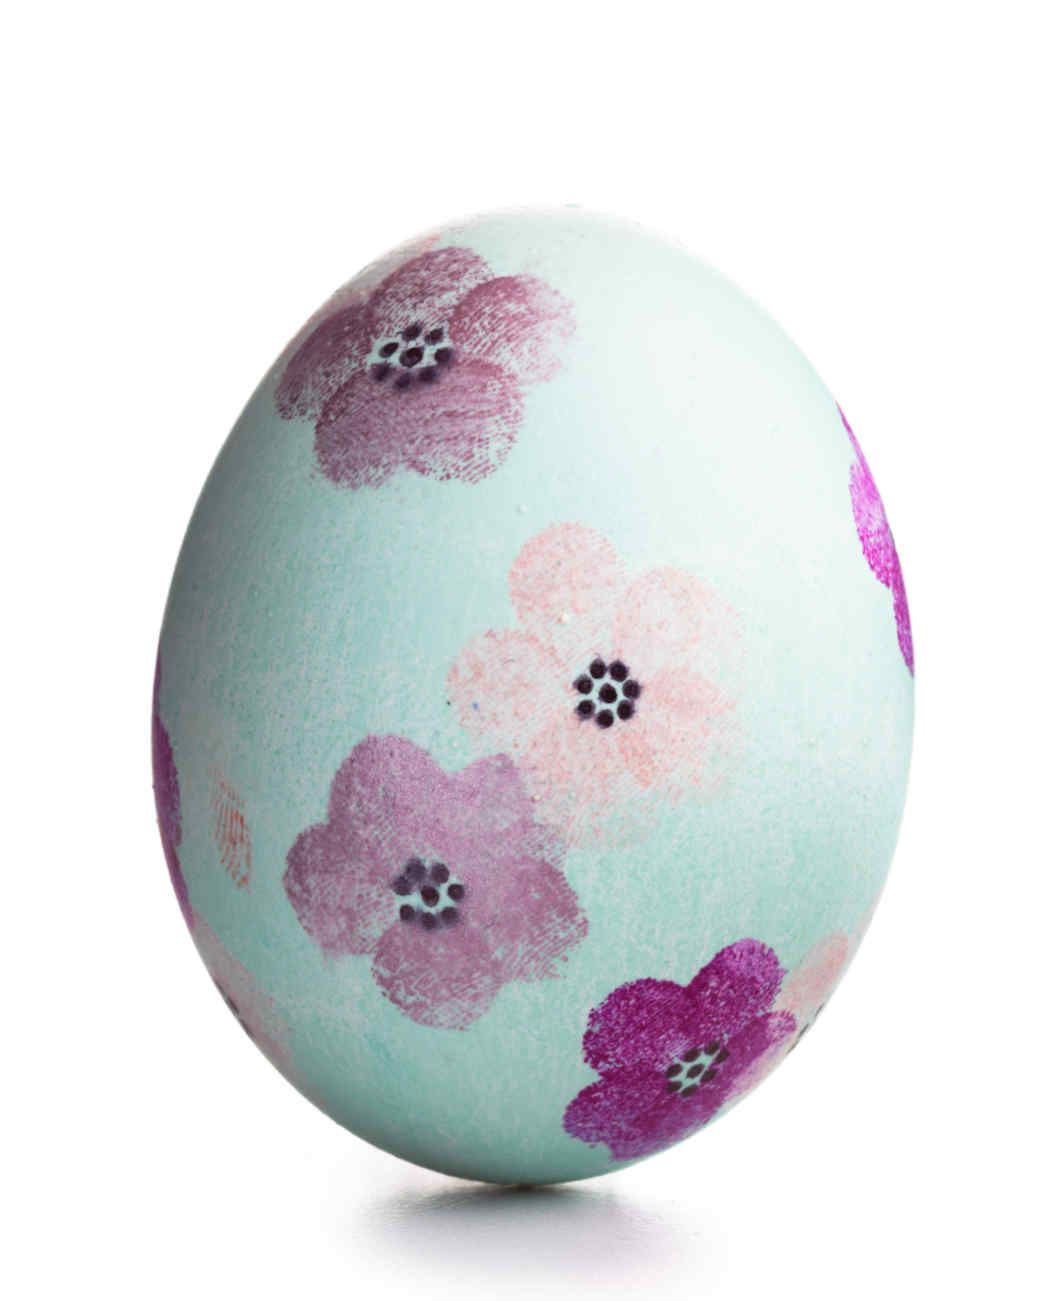 egg-dyeing-app-d107182-fingerprint-flowers0414.jpg